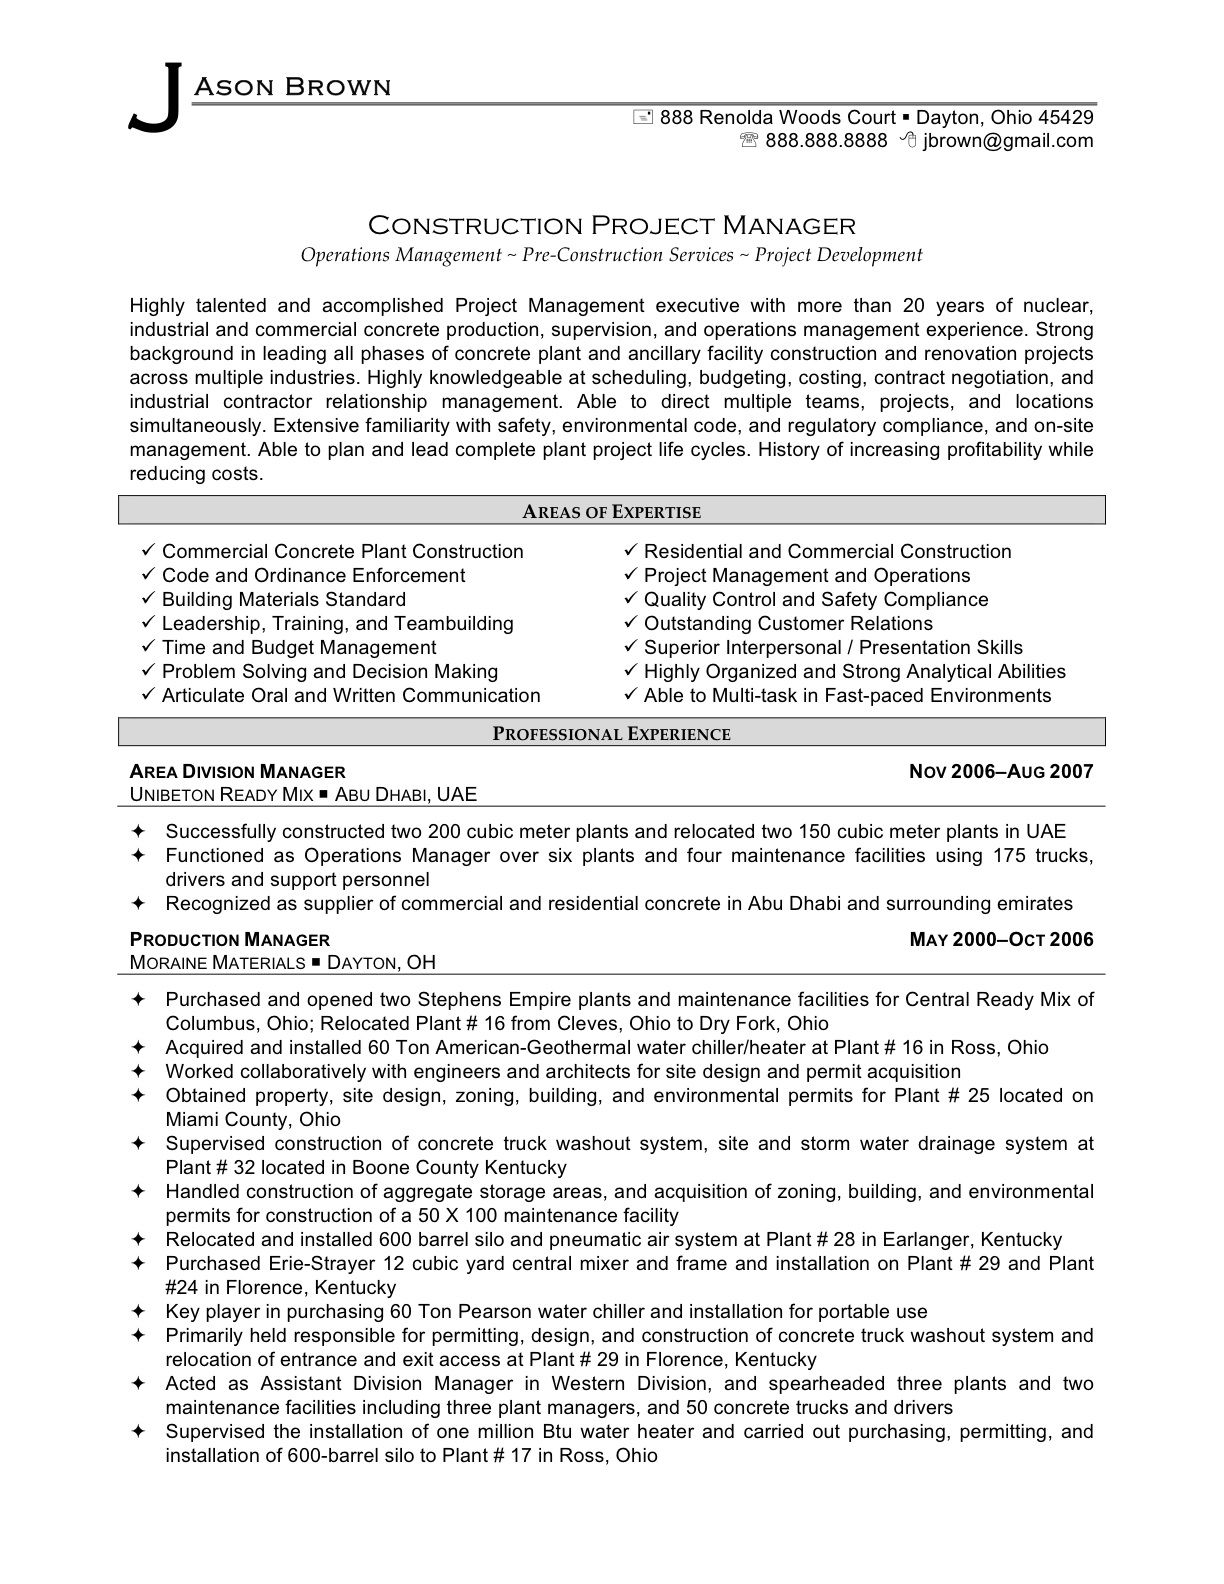 Professional Resume Samples Management Sample Resume Project